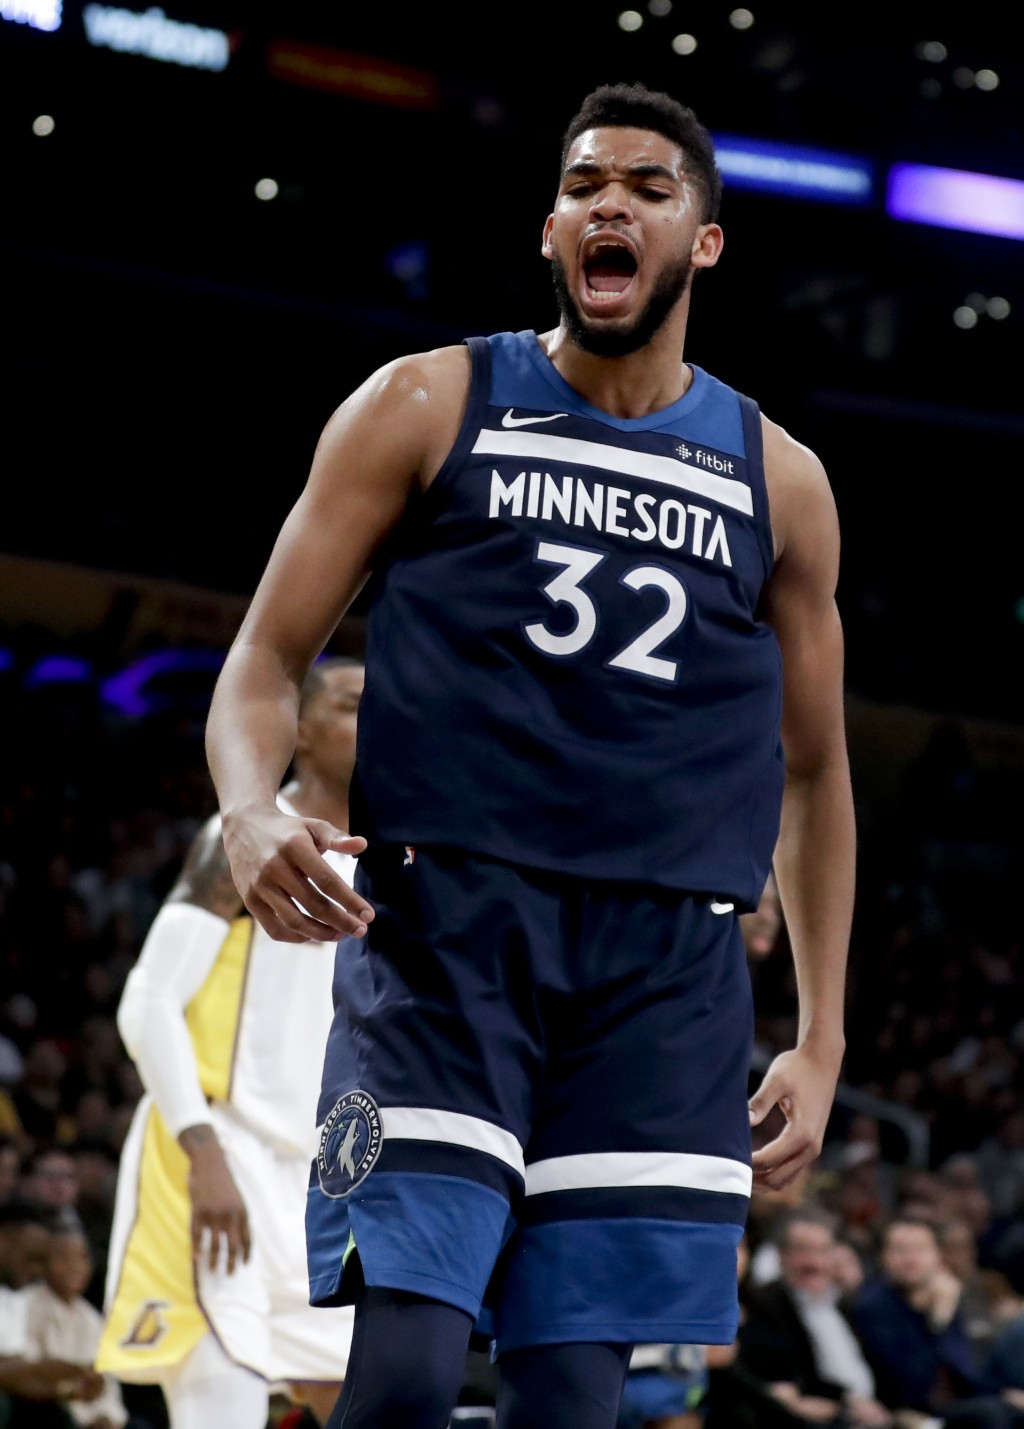 Minnesota Timberwolves center Karl-Anthony Towns celebrates after making a basket against the Los Angeles Lakers during the first half of an NBA baske...